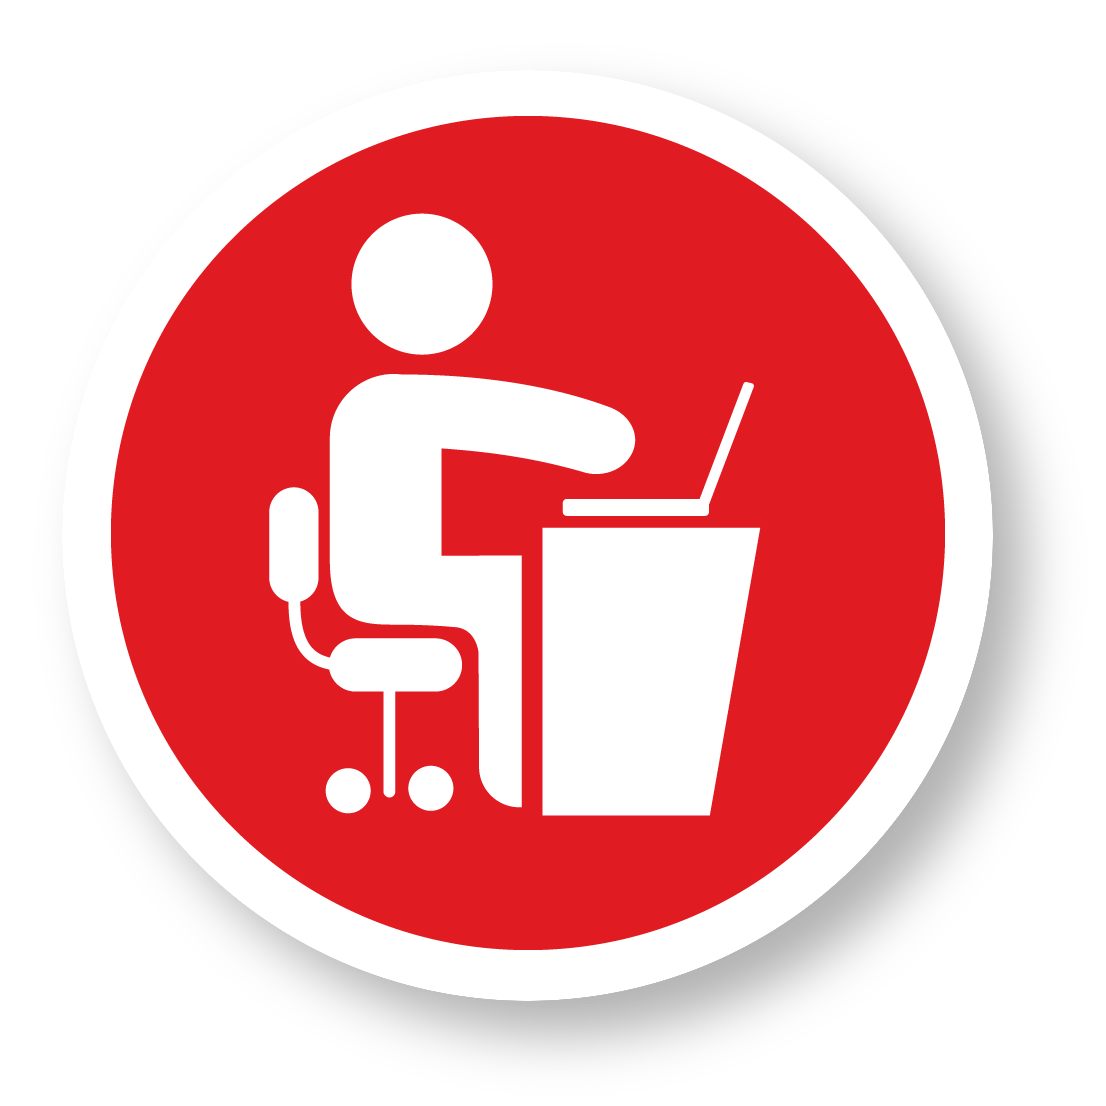 OFFICE - SITE - STAFF_SHADOW + RED.png